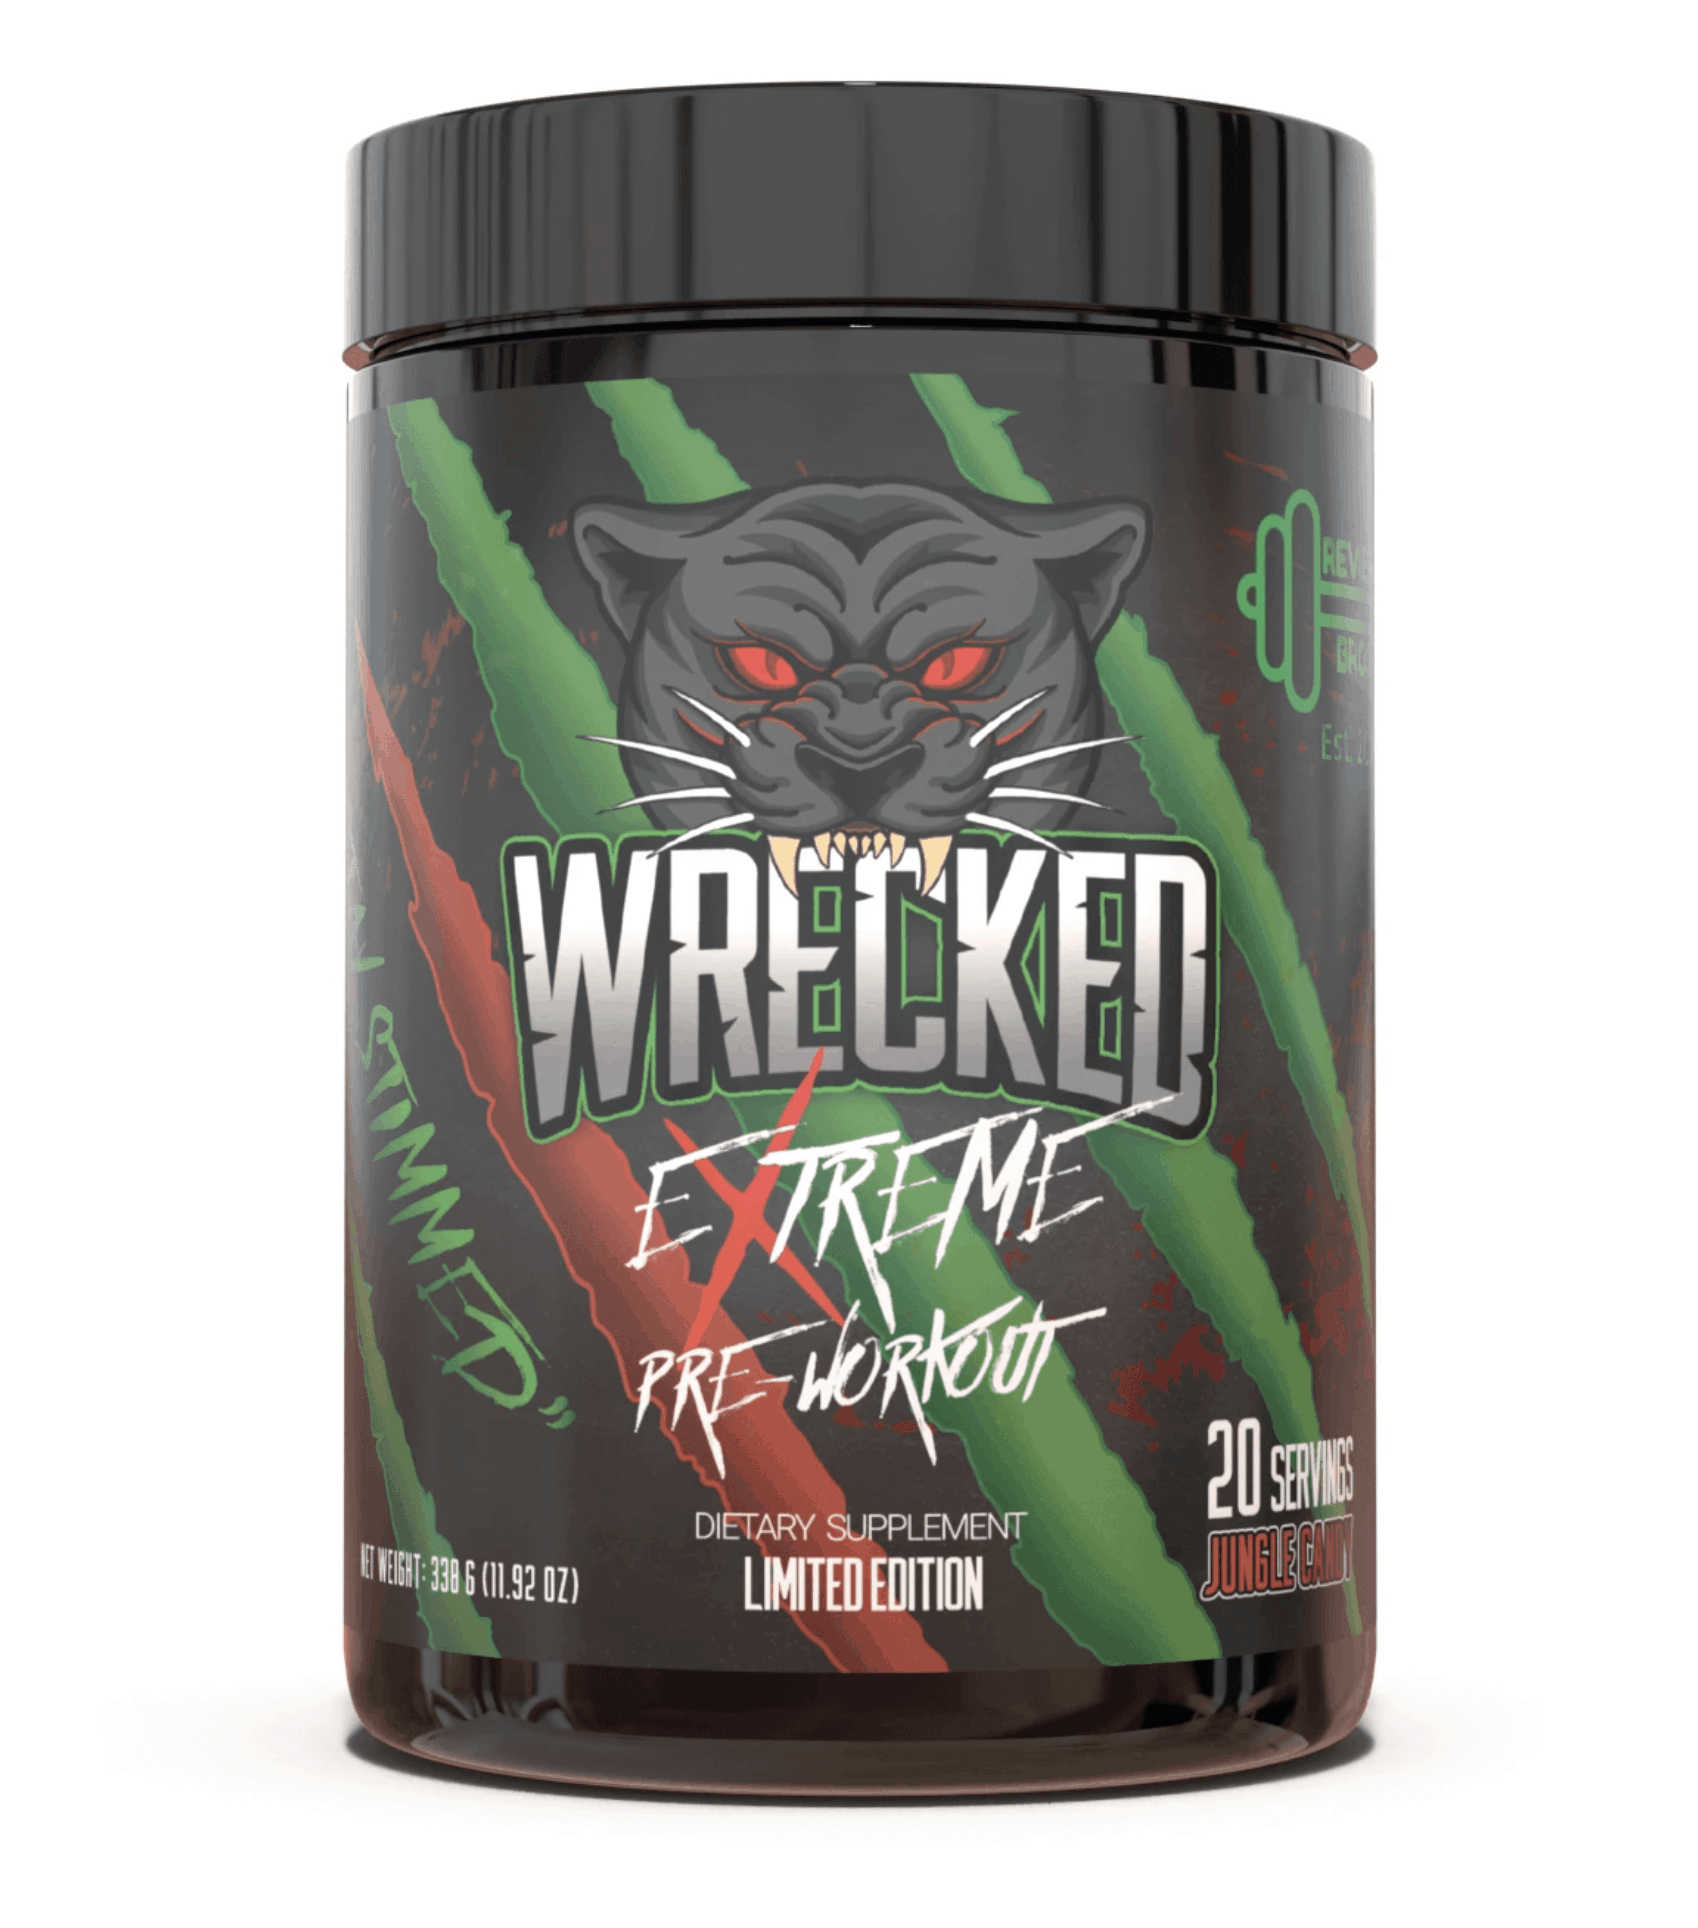 Huge Nutrition Wrecked Extreme Limited Edition